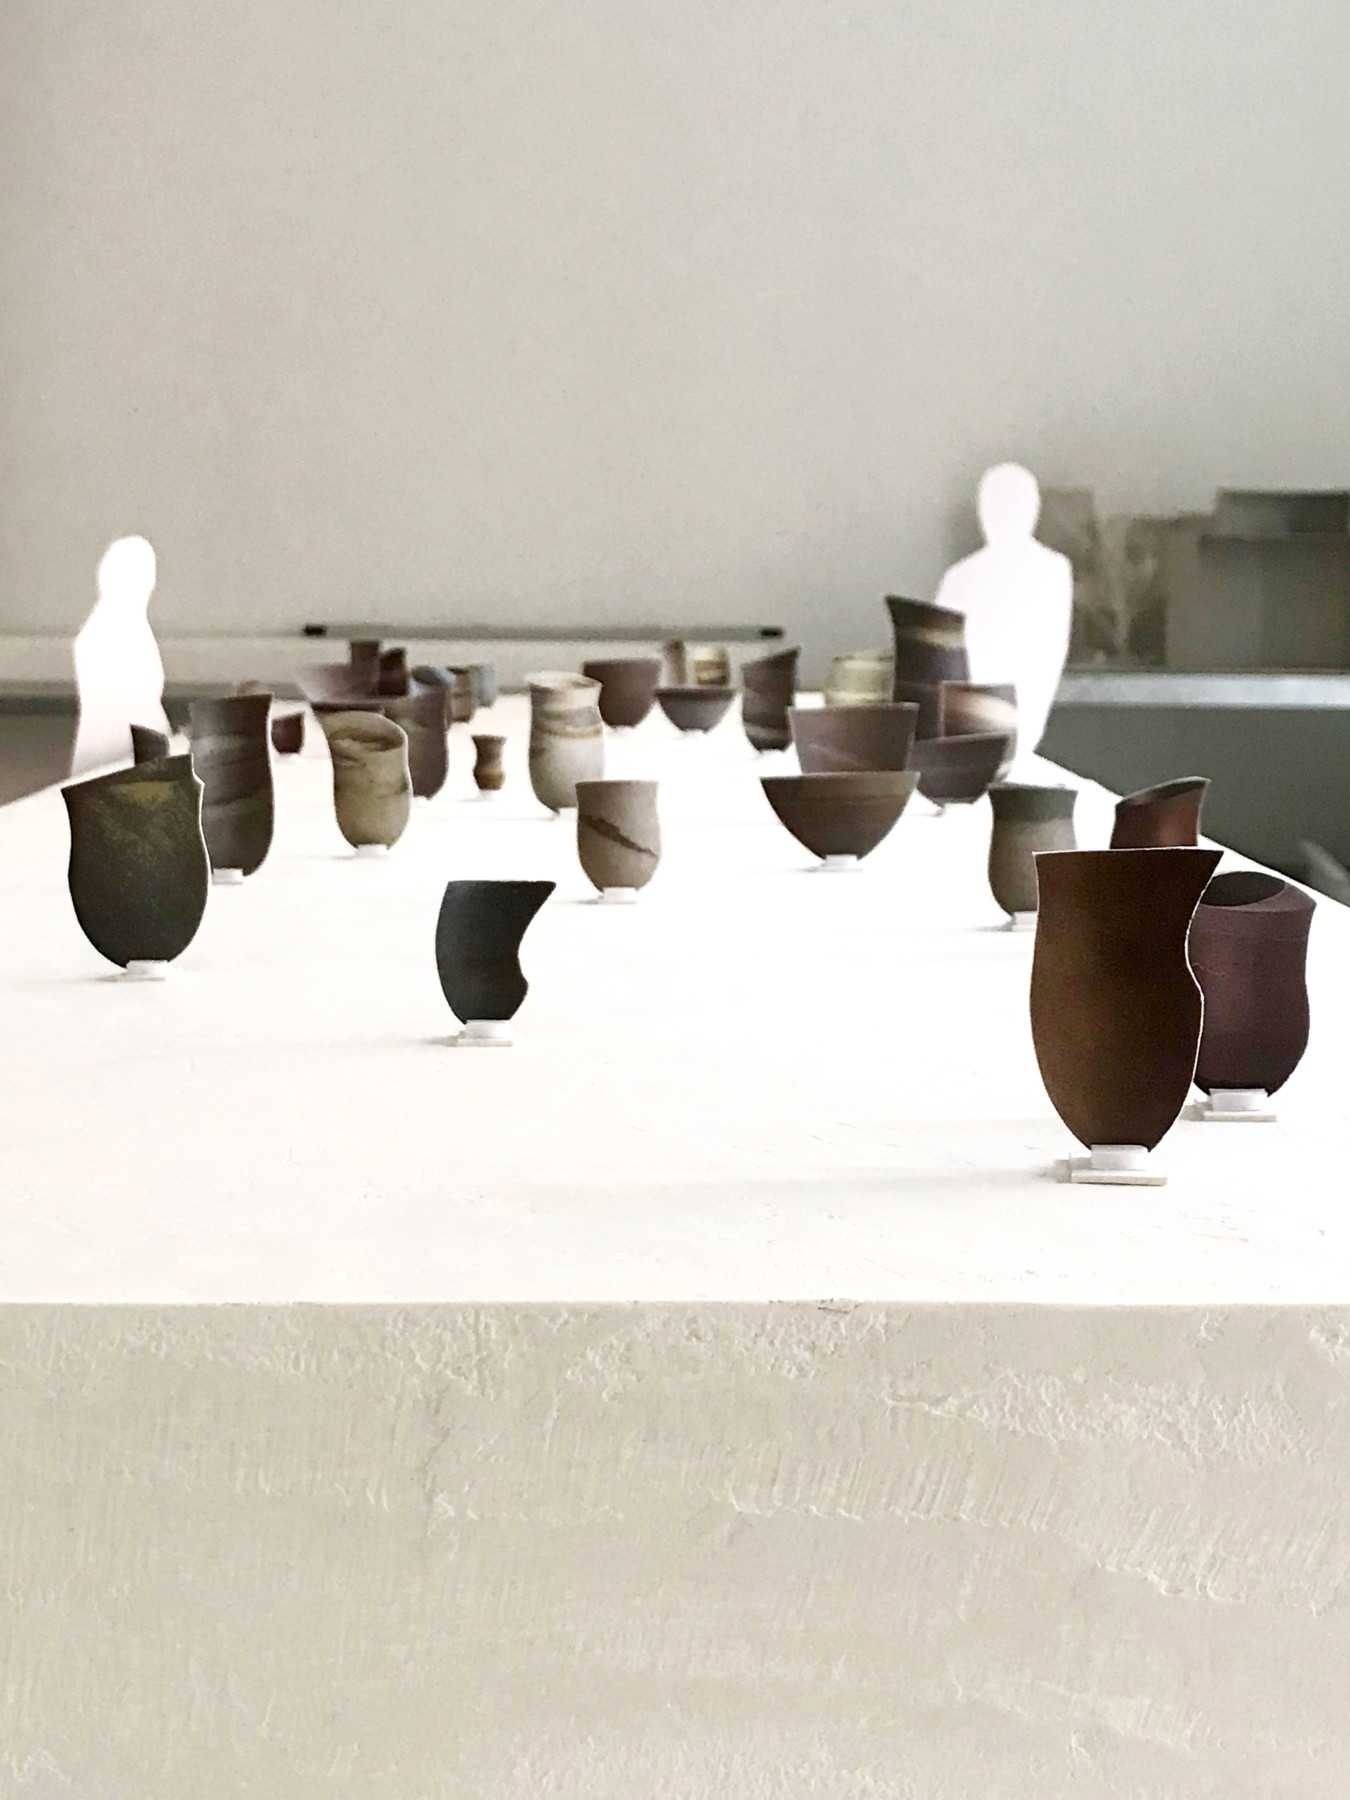 kettles-yard-exhibition-design-jamie-fobert-architects-model-testing2